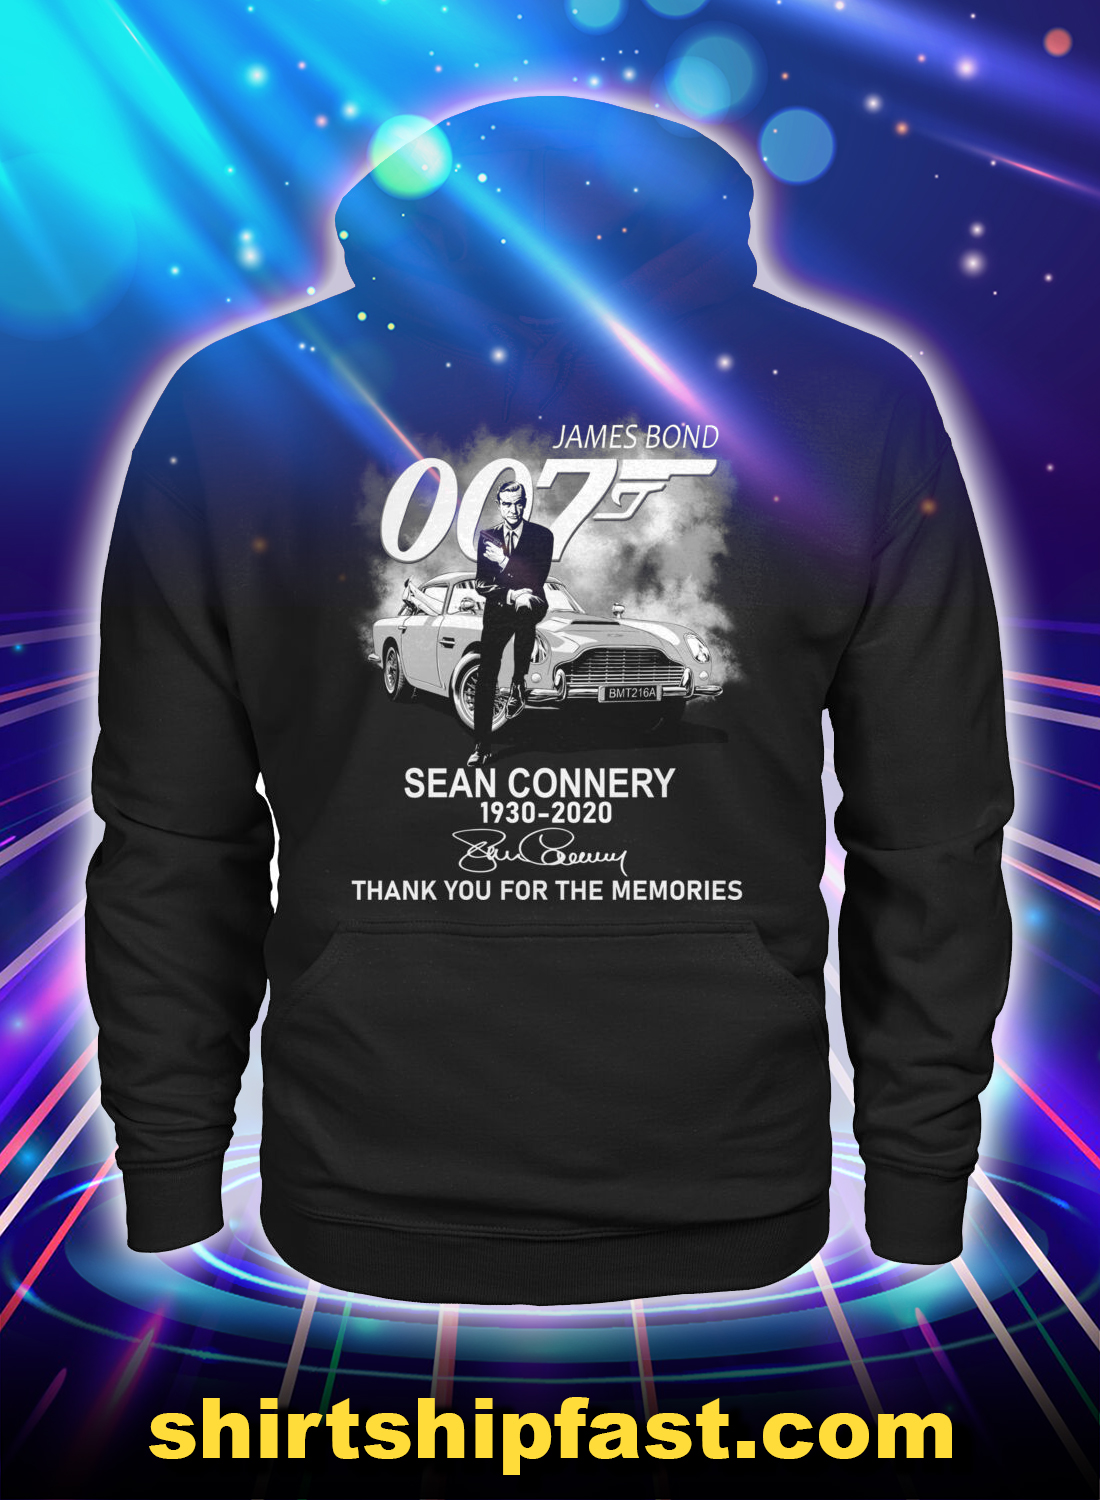 James Bond 007 sean connery thank you for the memories hoodie